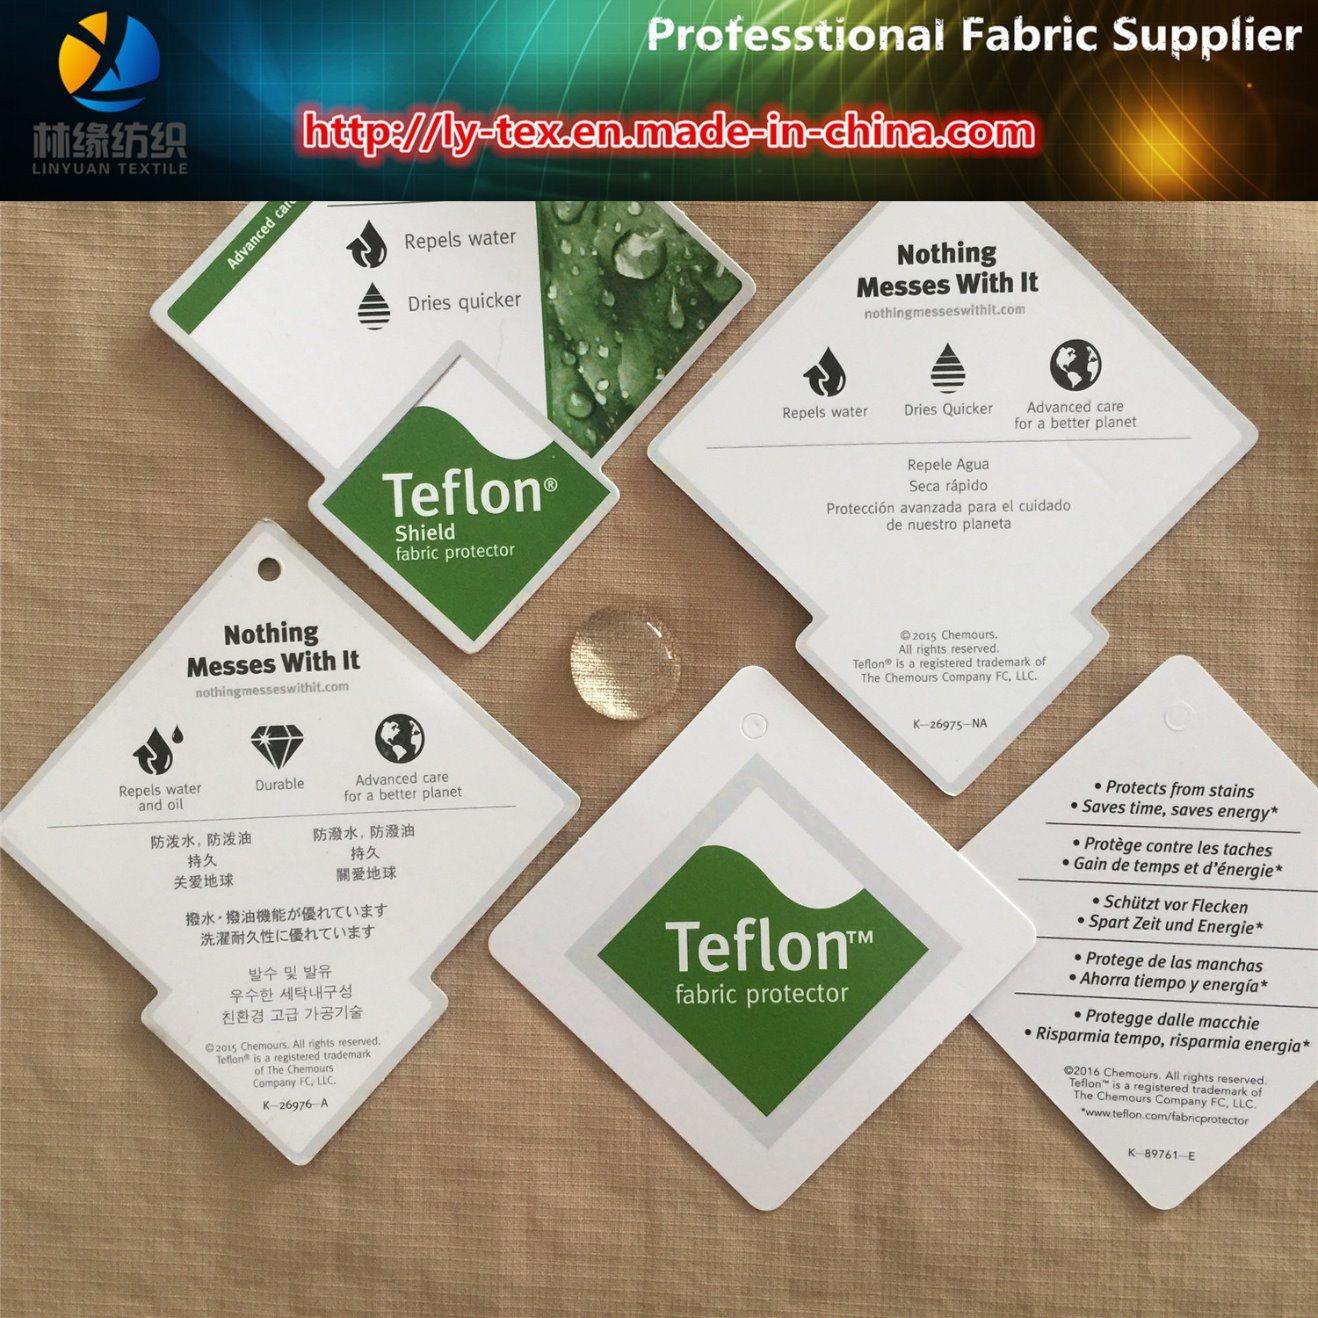 Teflon Nylon Taslon Check Fabric for Garment, Nylon Fabric (LY-R0109)